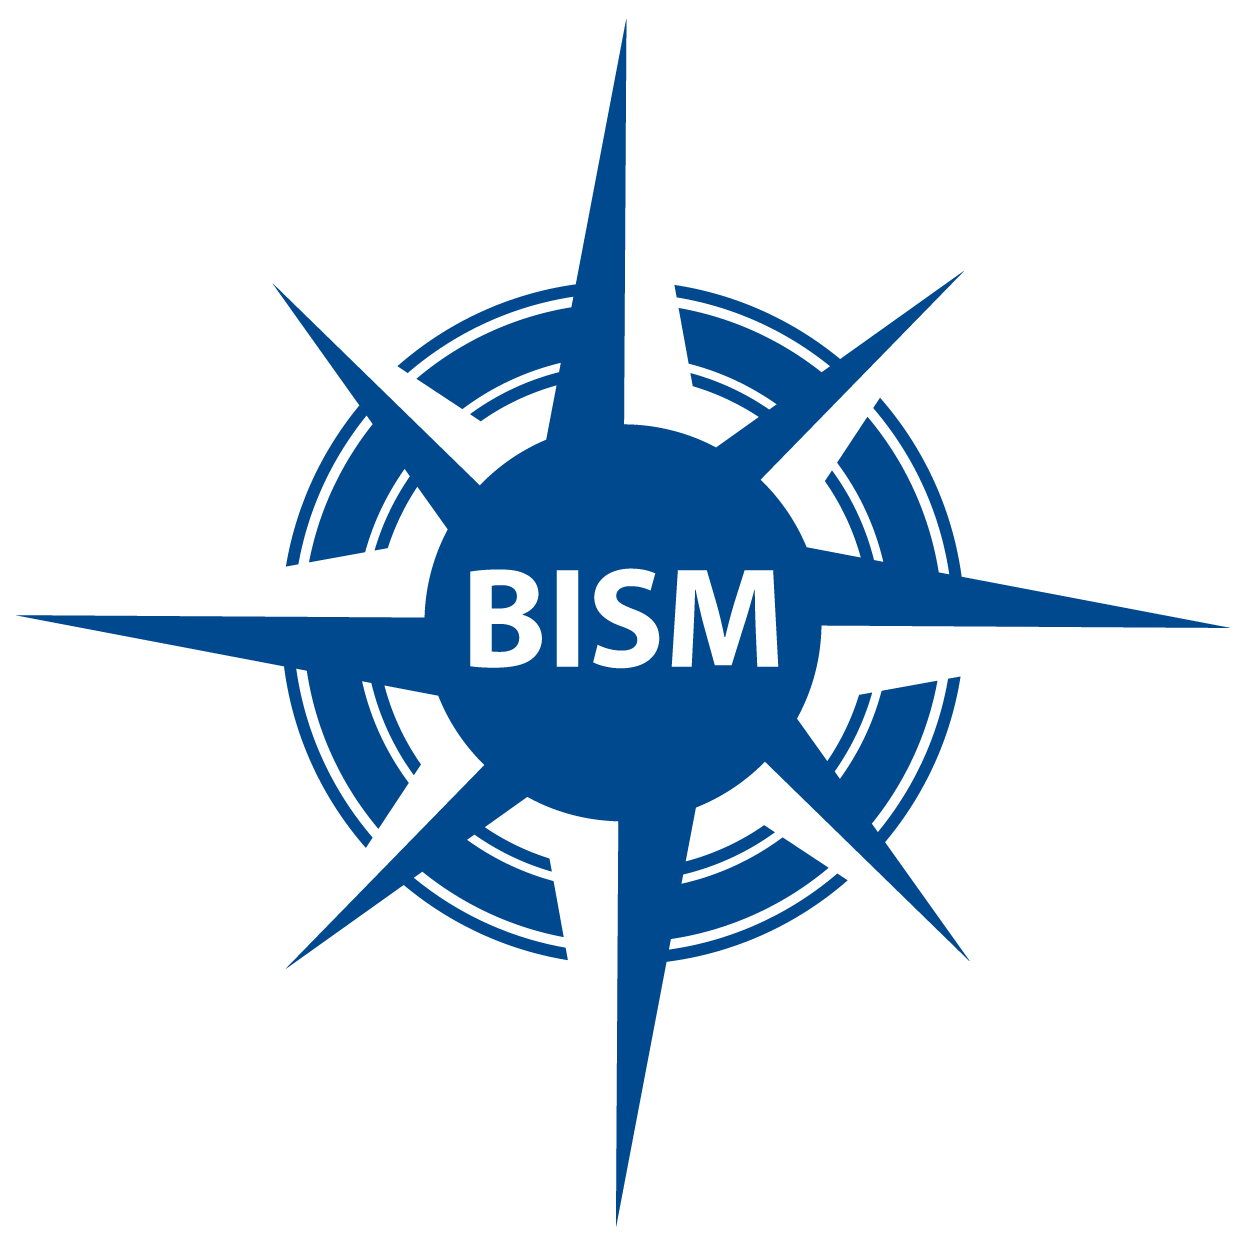 blue compass with BISM in center